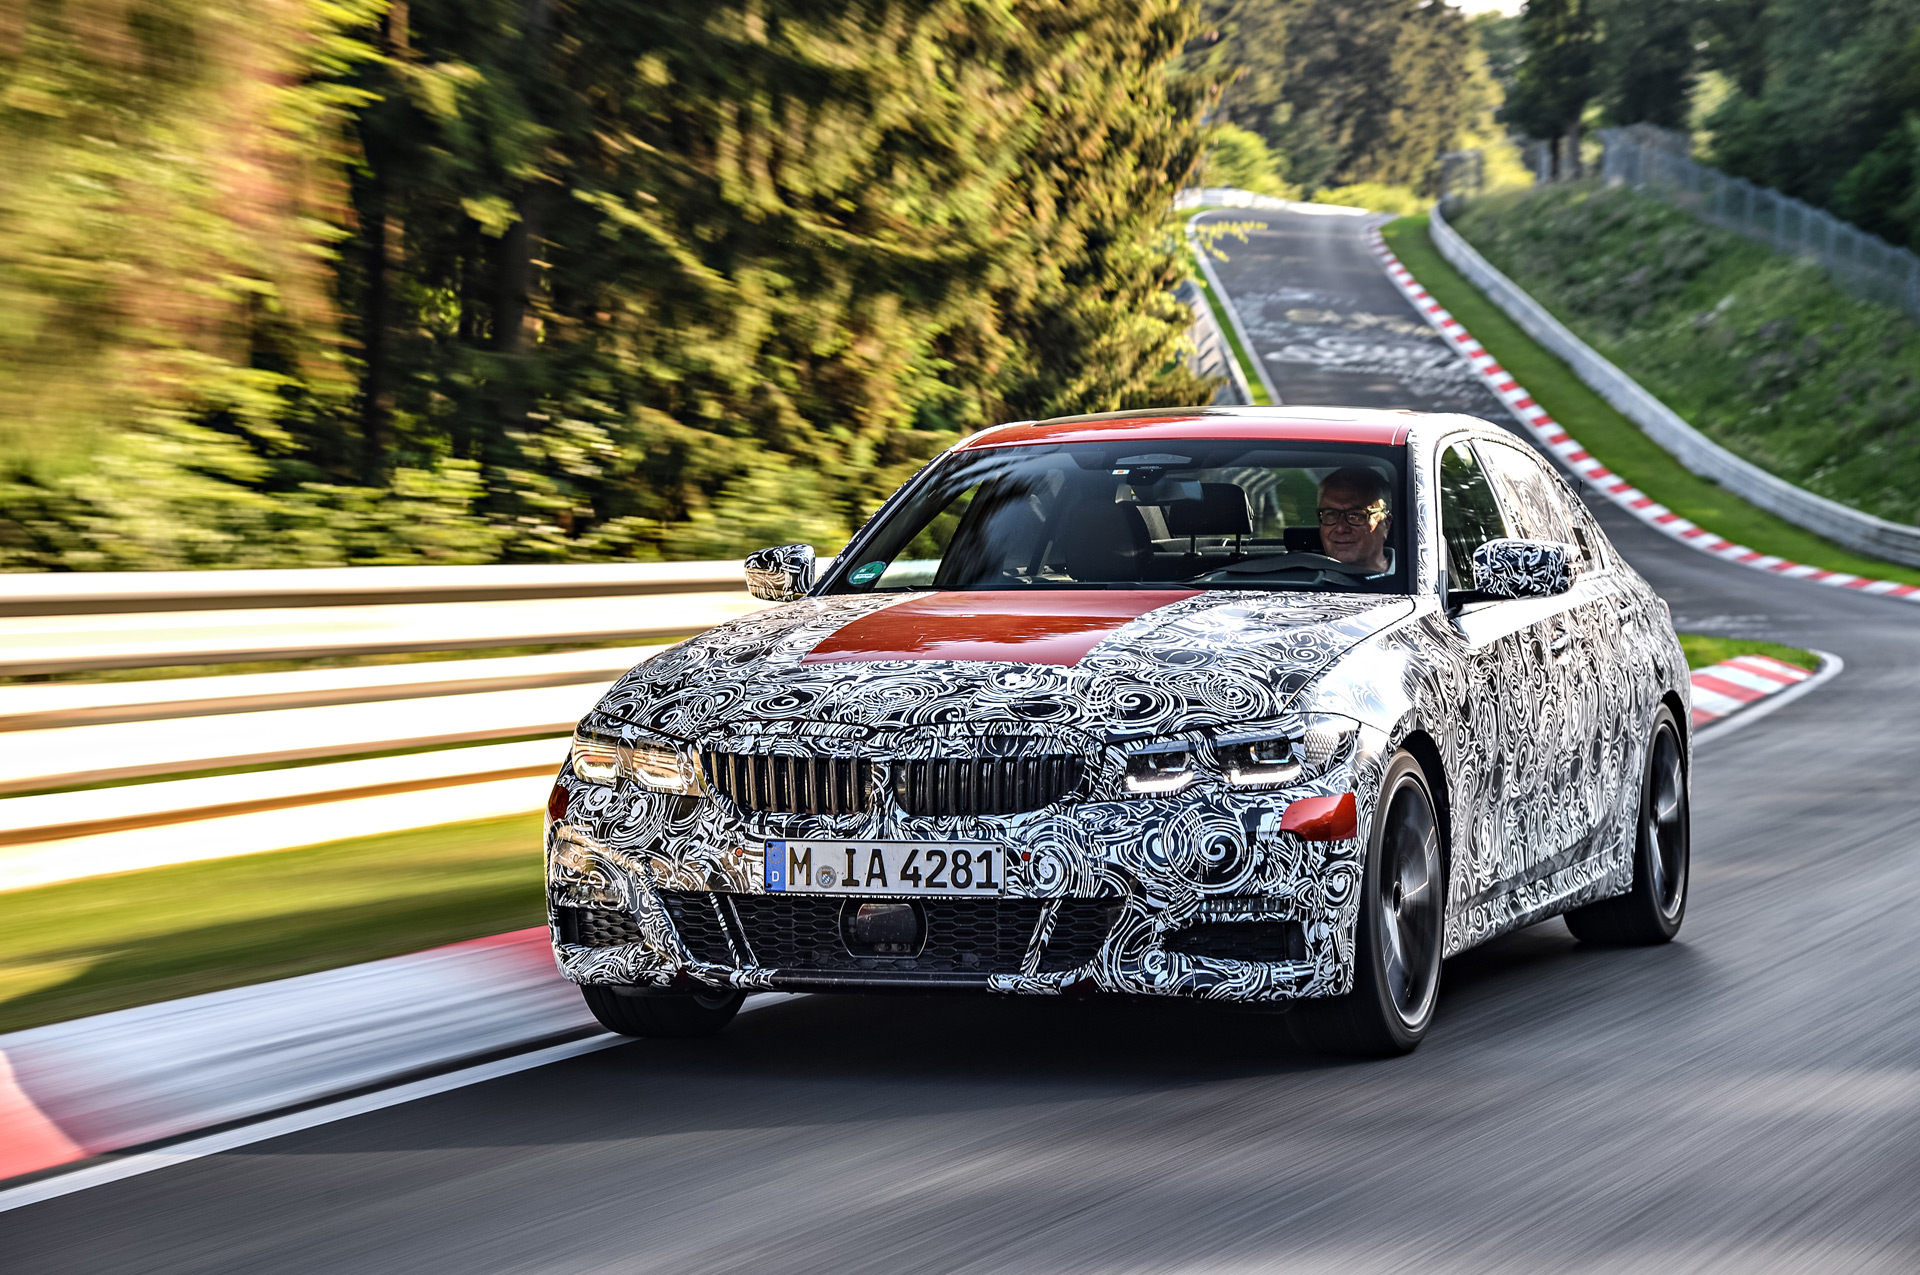 BMW swears its 3 Series is going to be a sport sedan again